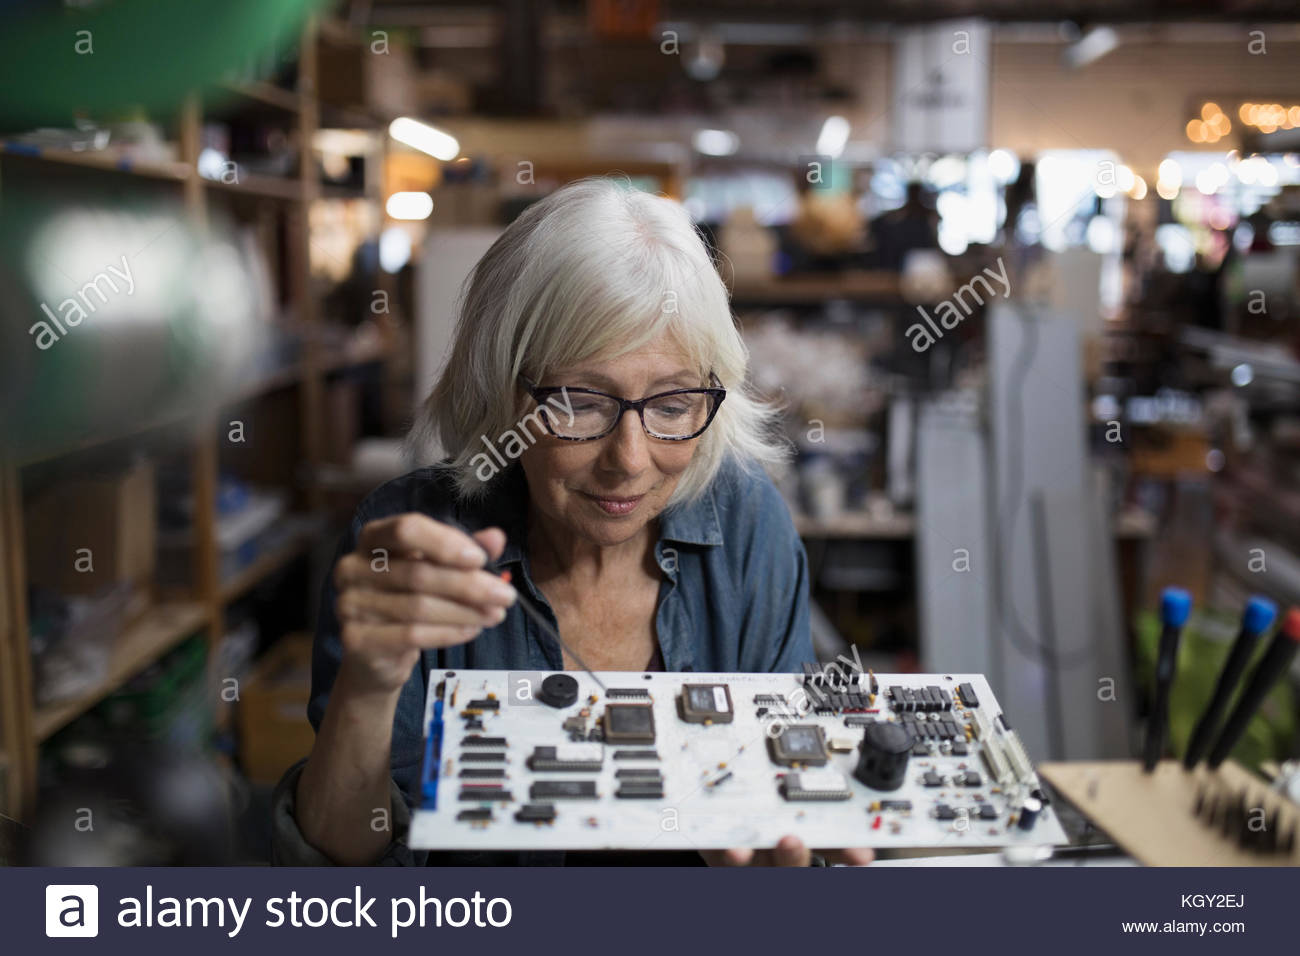 Senior female engineer assembling electronics circuit board in workshop - Stock Image